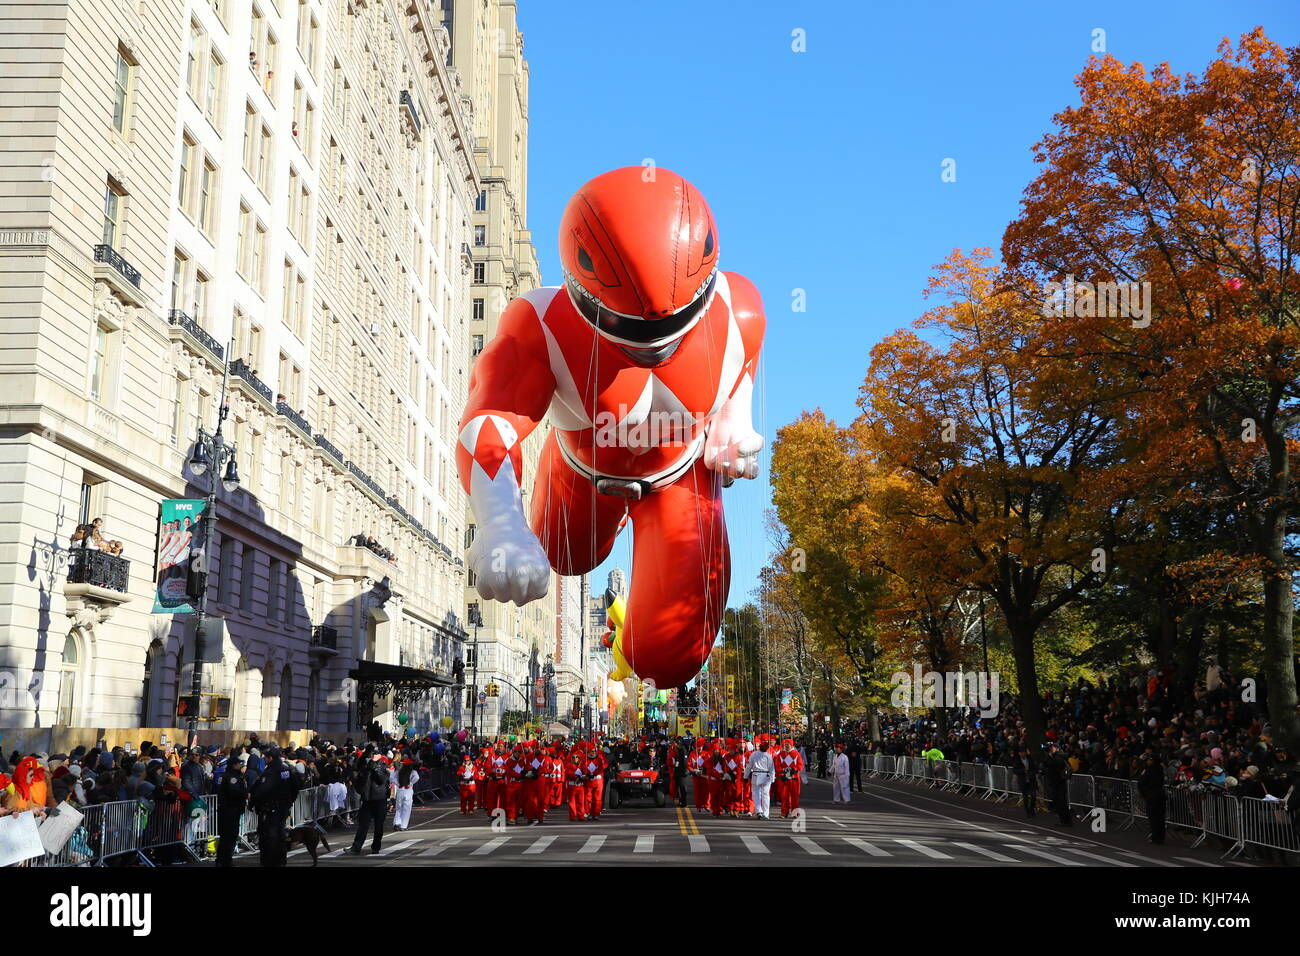 New York, USA. 23 Nov, 2017. Die rote Mighty morphin Power Ranger Ballon ist entlang der Central Park West in der Stockbild